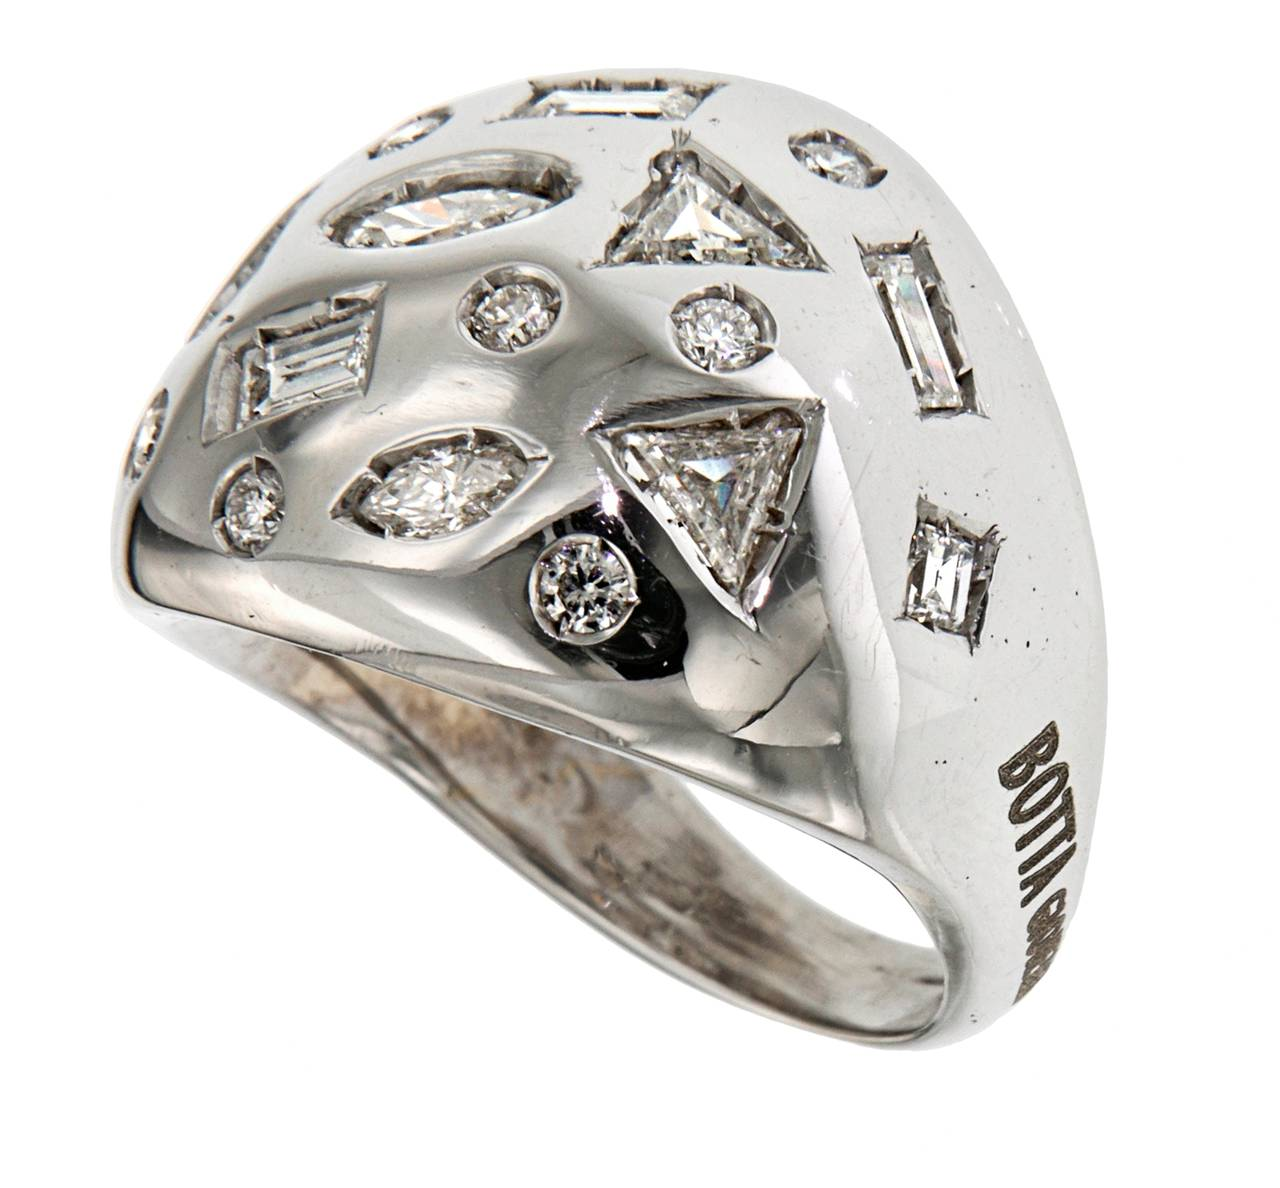 diamonds white gold cocktail ring modern for sale at 1stdibs